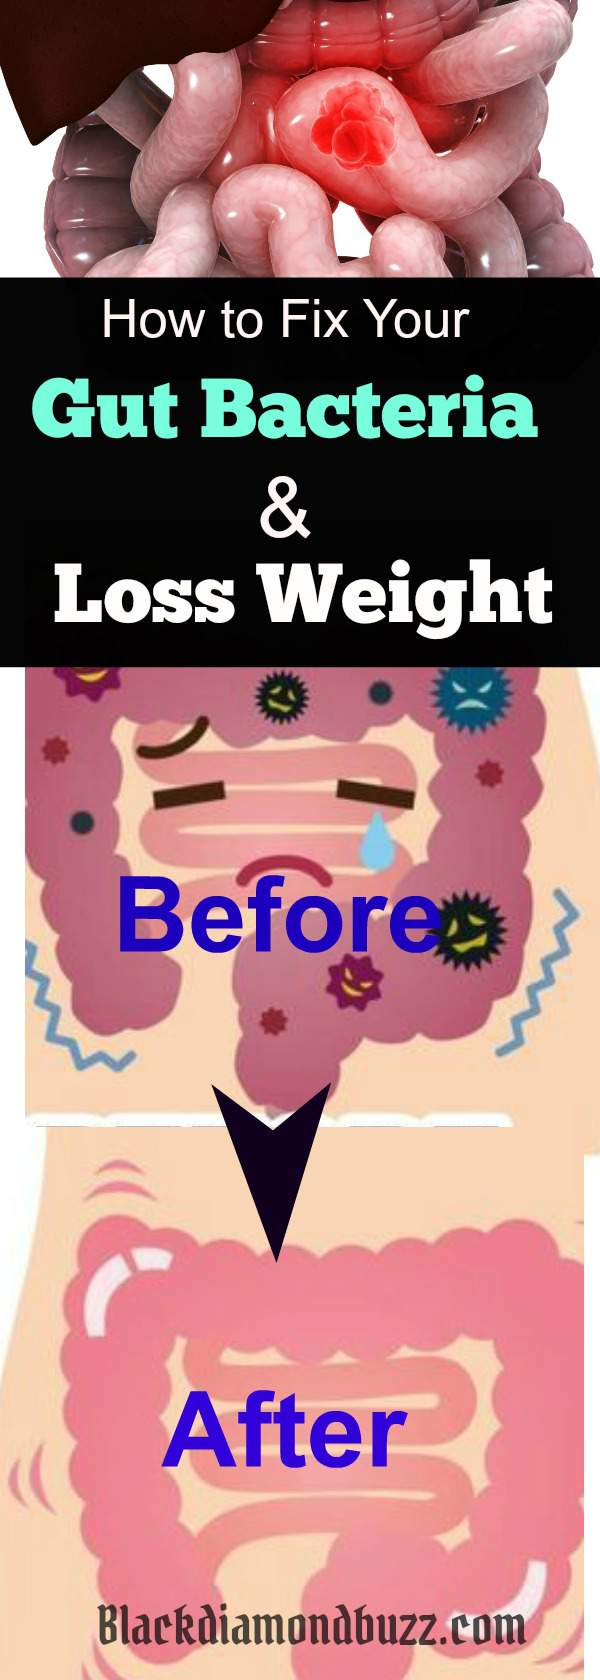 Weight loss medication safety image 4